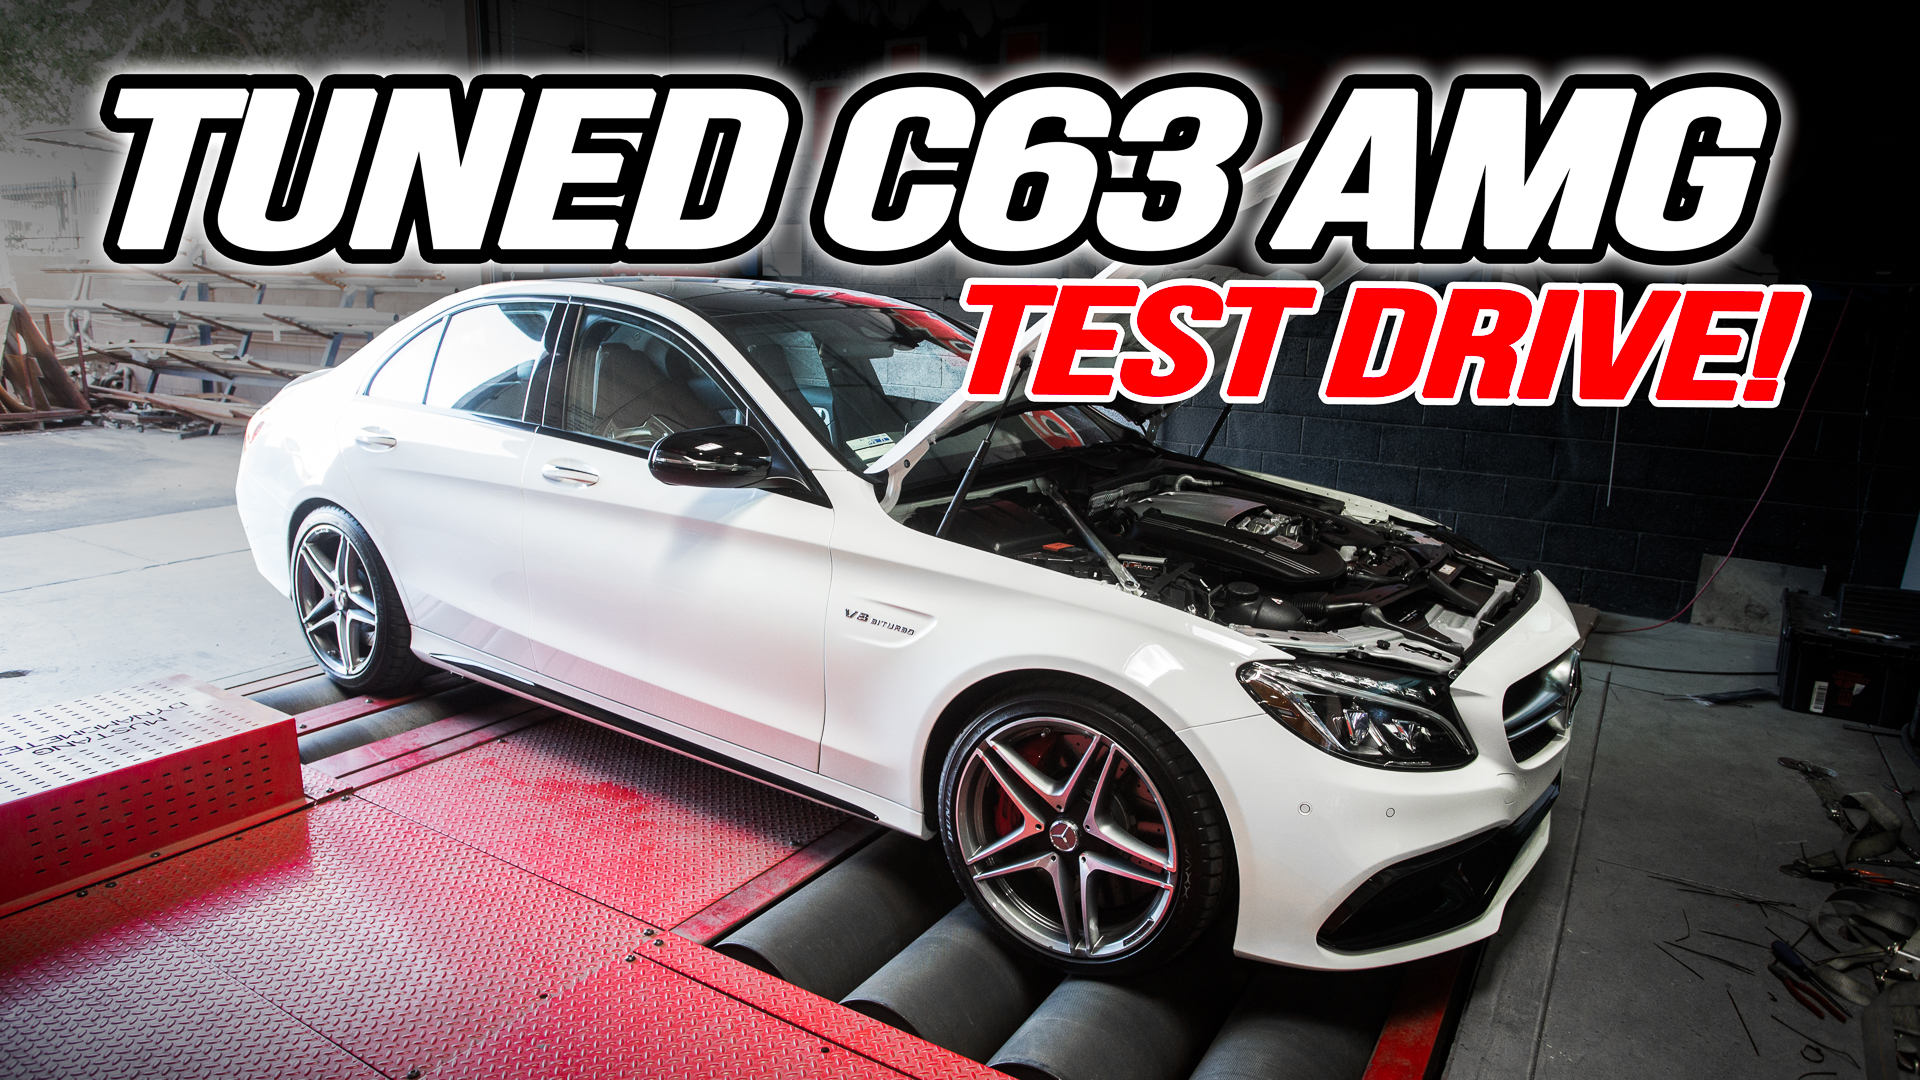 Mercedes C63 AMG Tuning Box Test Drive Video